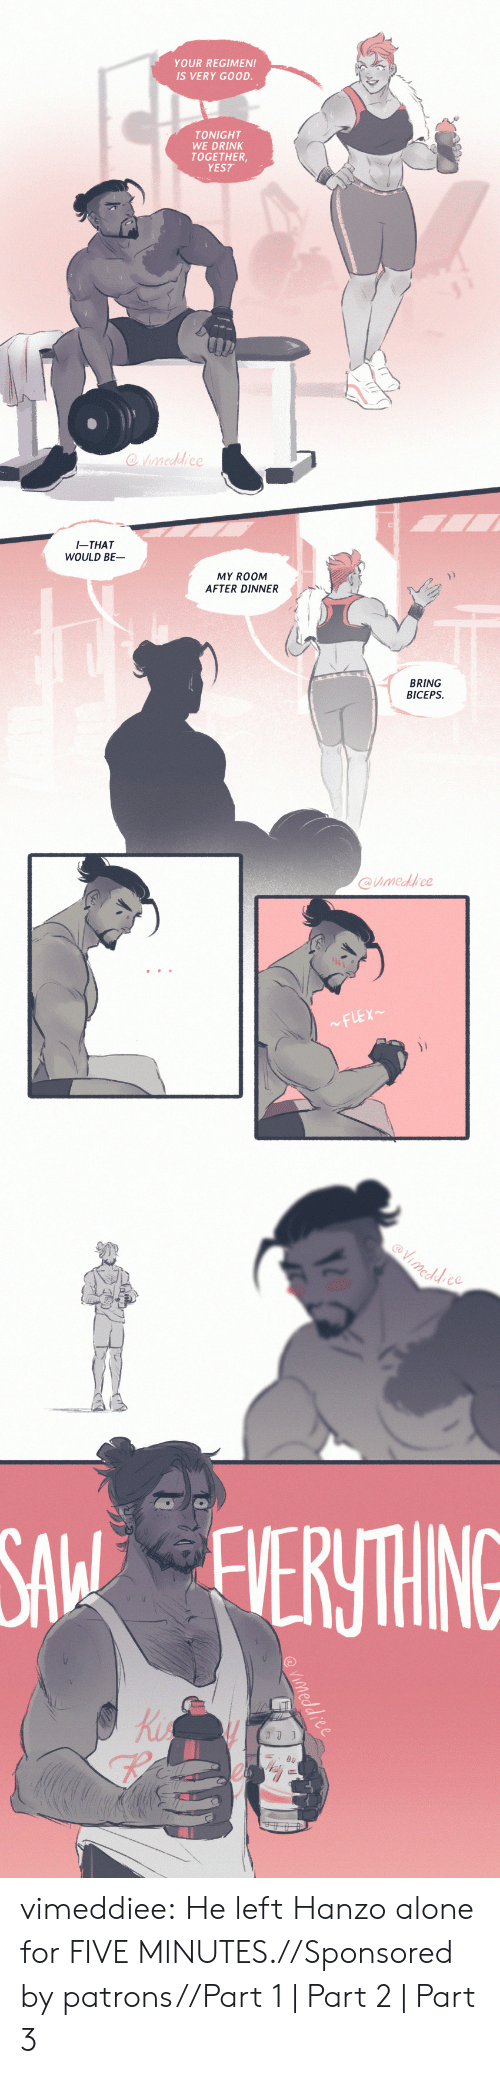 Part 2: YOUR REGIMEN!  IS VERY GOOD.  TONIGHT  WE DRINK  TOGETHER  YES?   I-THAT  WOULD BE  MY ROOM  AFTER DINNER  兀  BRING  BICEPS  @imedfrce   eddce  SA ERTHING  Ki  re vimeddiee:  He left Hanzo alone for FIVE MINUTES.//Sponsored by patrons//Part 1 | Part 2| Part 3